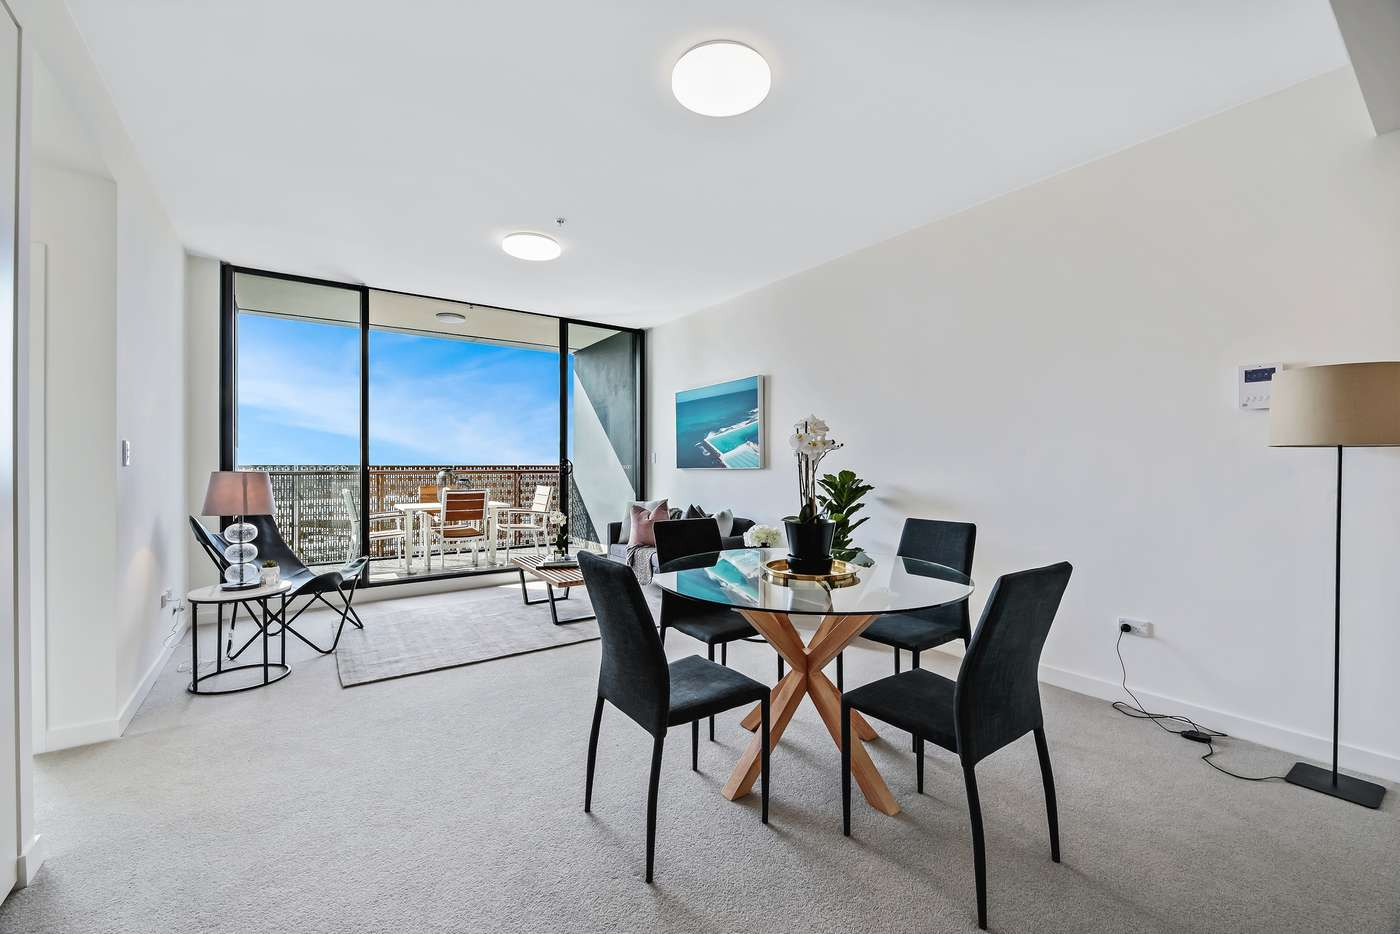 Main view of Homely apartment listing, 1202/23 Treacy Street, Hurstville NSW 2220